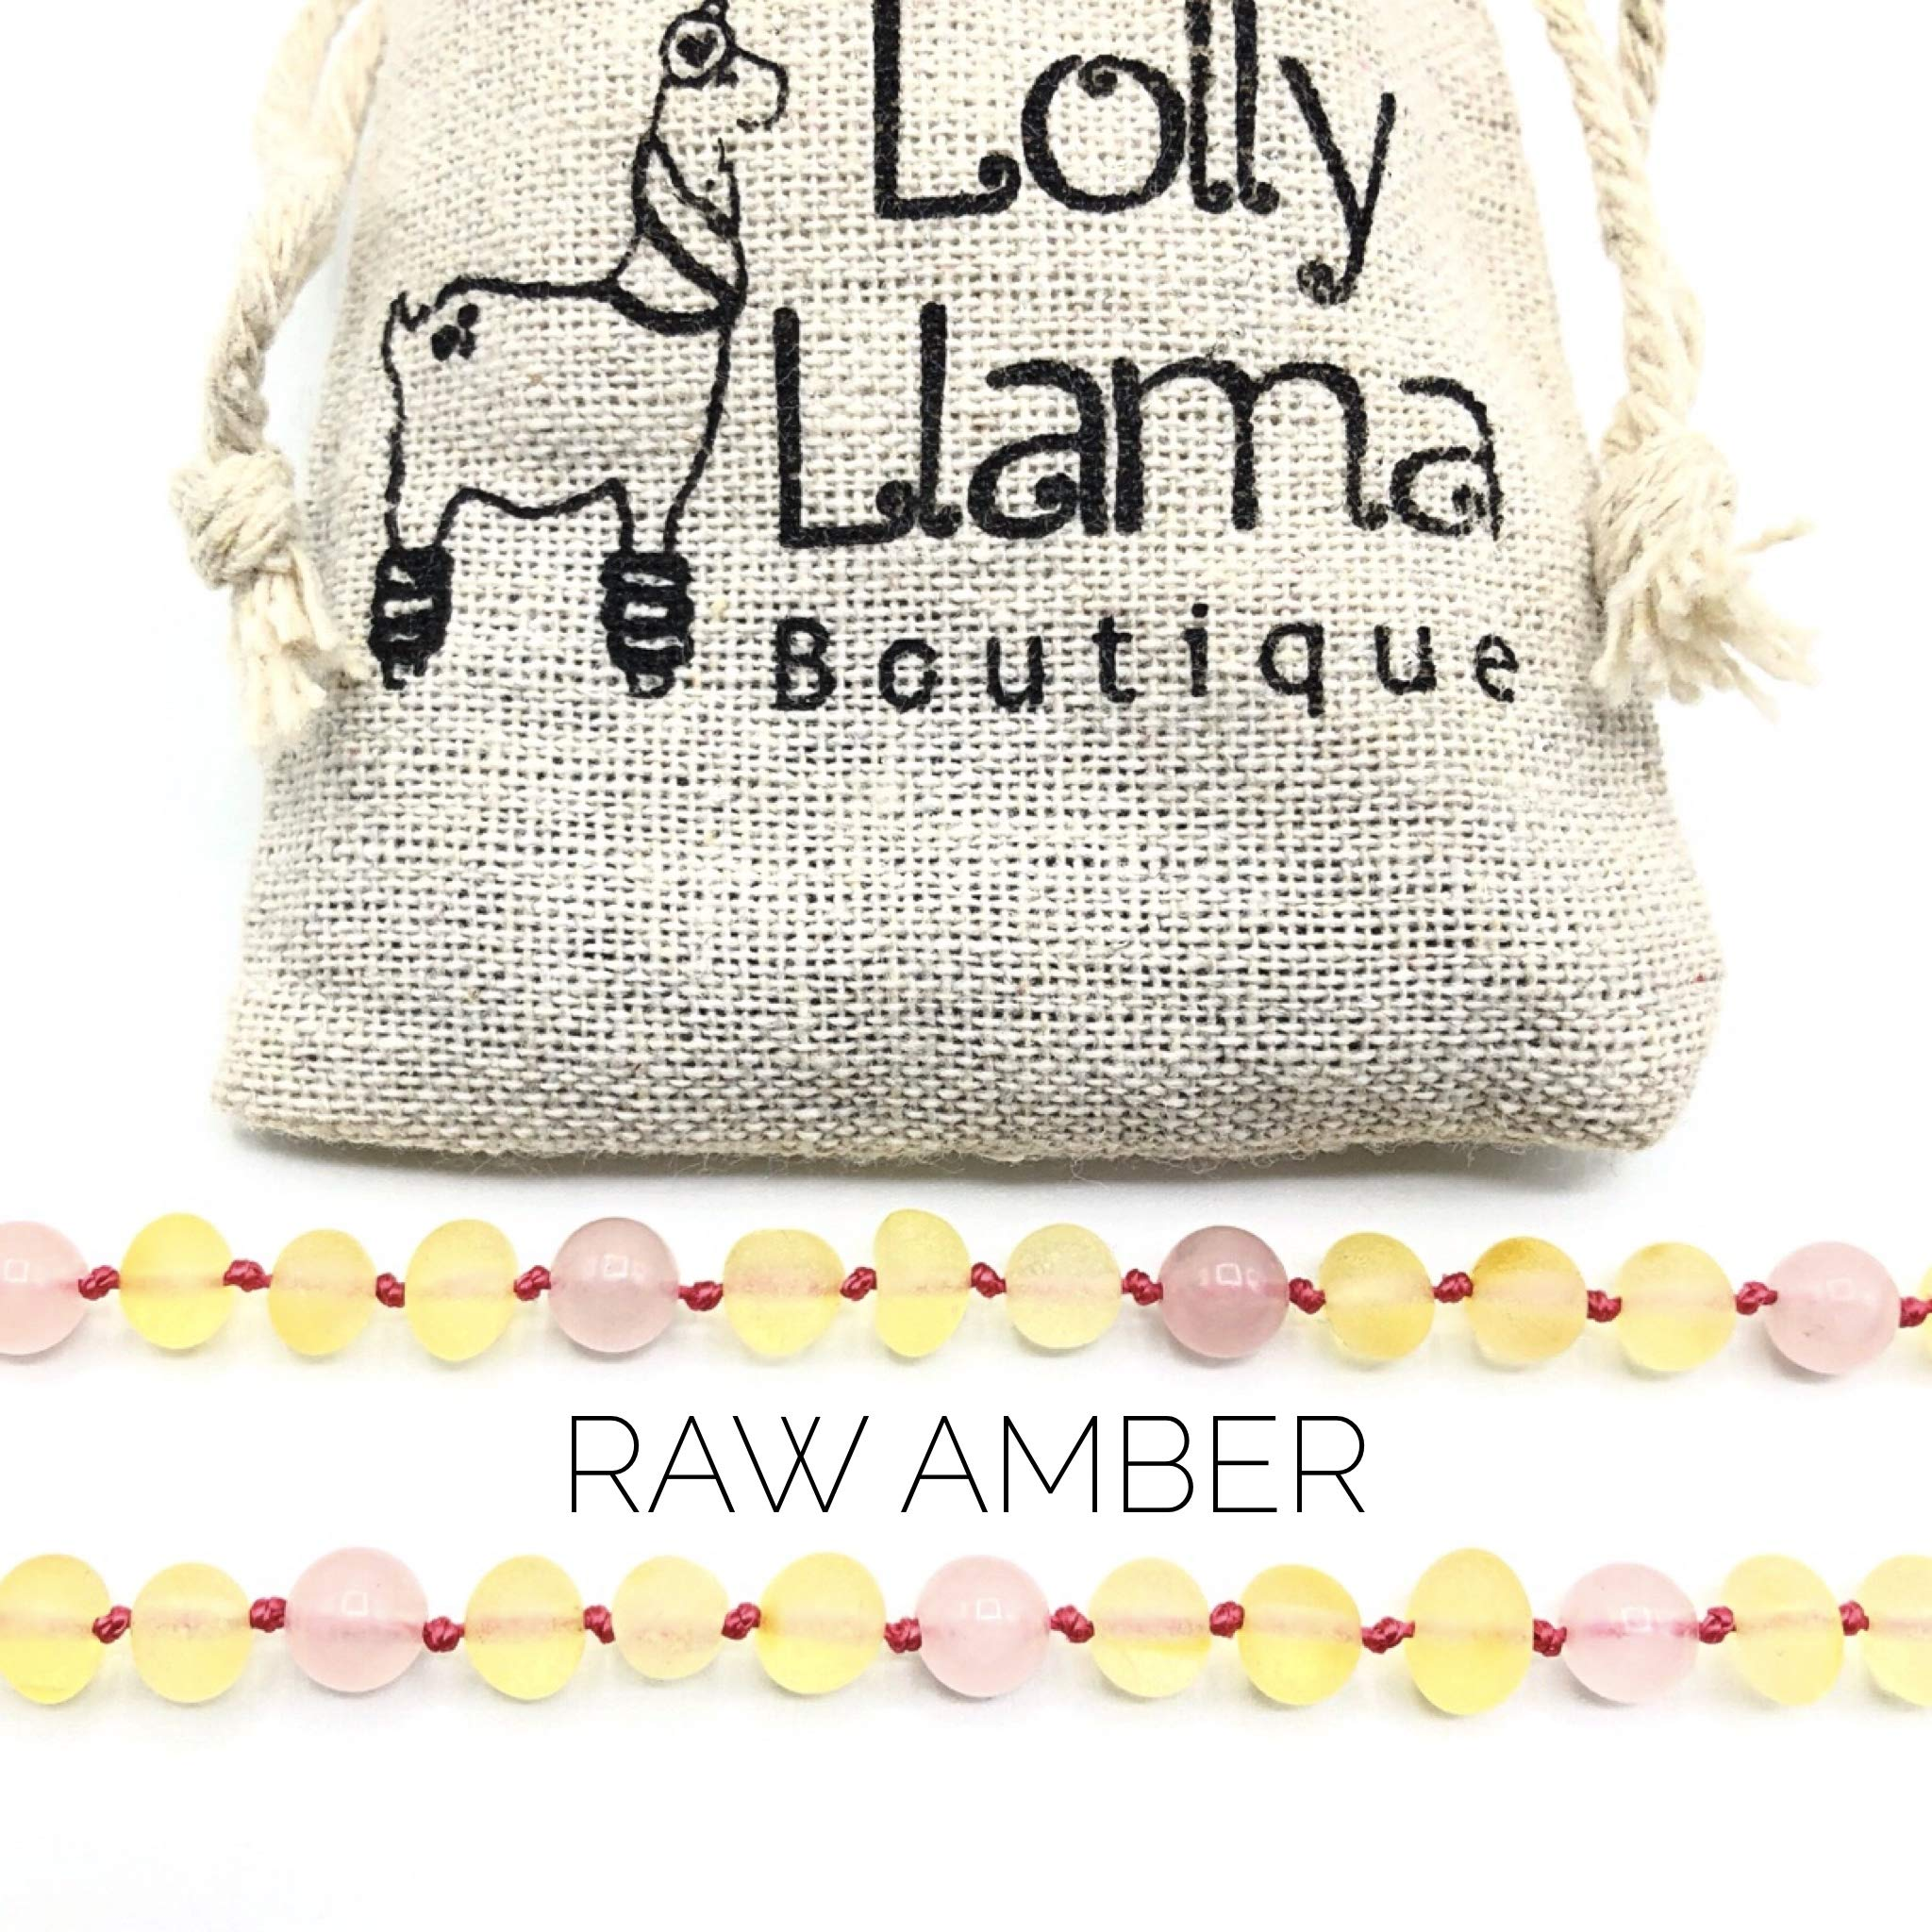 Raw Amber Teething Necklace for Babies (Unisex) Teething Pain Relief - Certified Genuine Baby Baltic Amber Necklace Honey Rose (15 Inches) by Lolly Llama